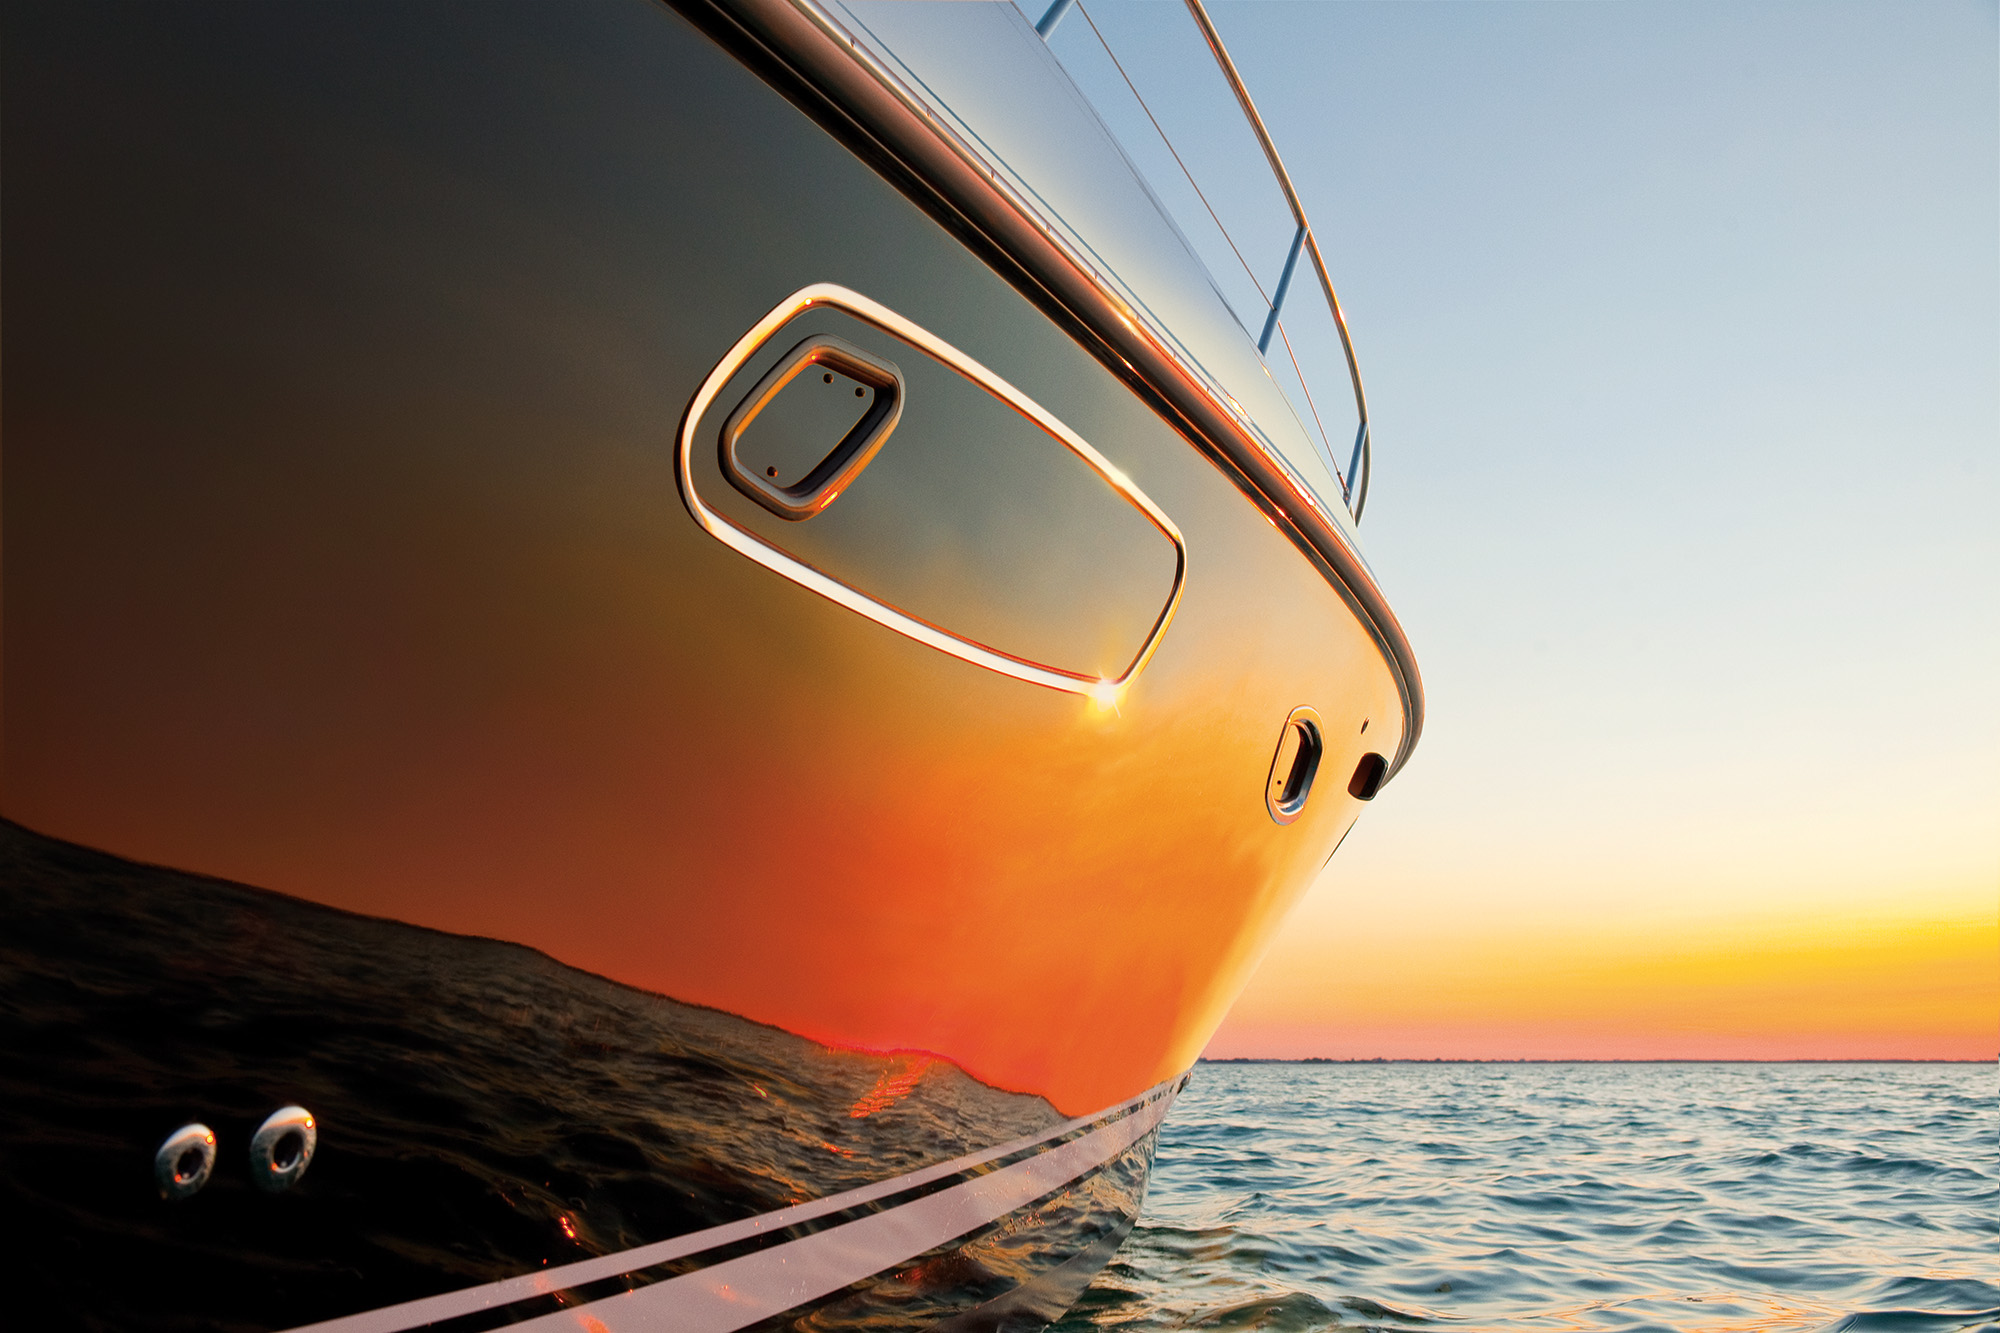 A bright orange sunset, reflected in the hull of a motorboat